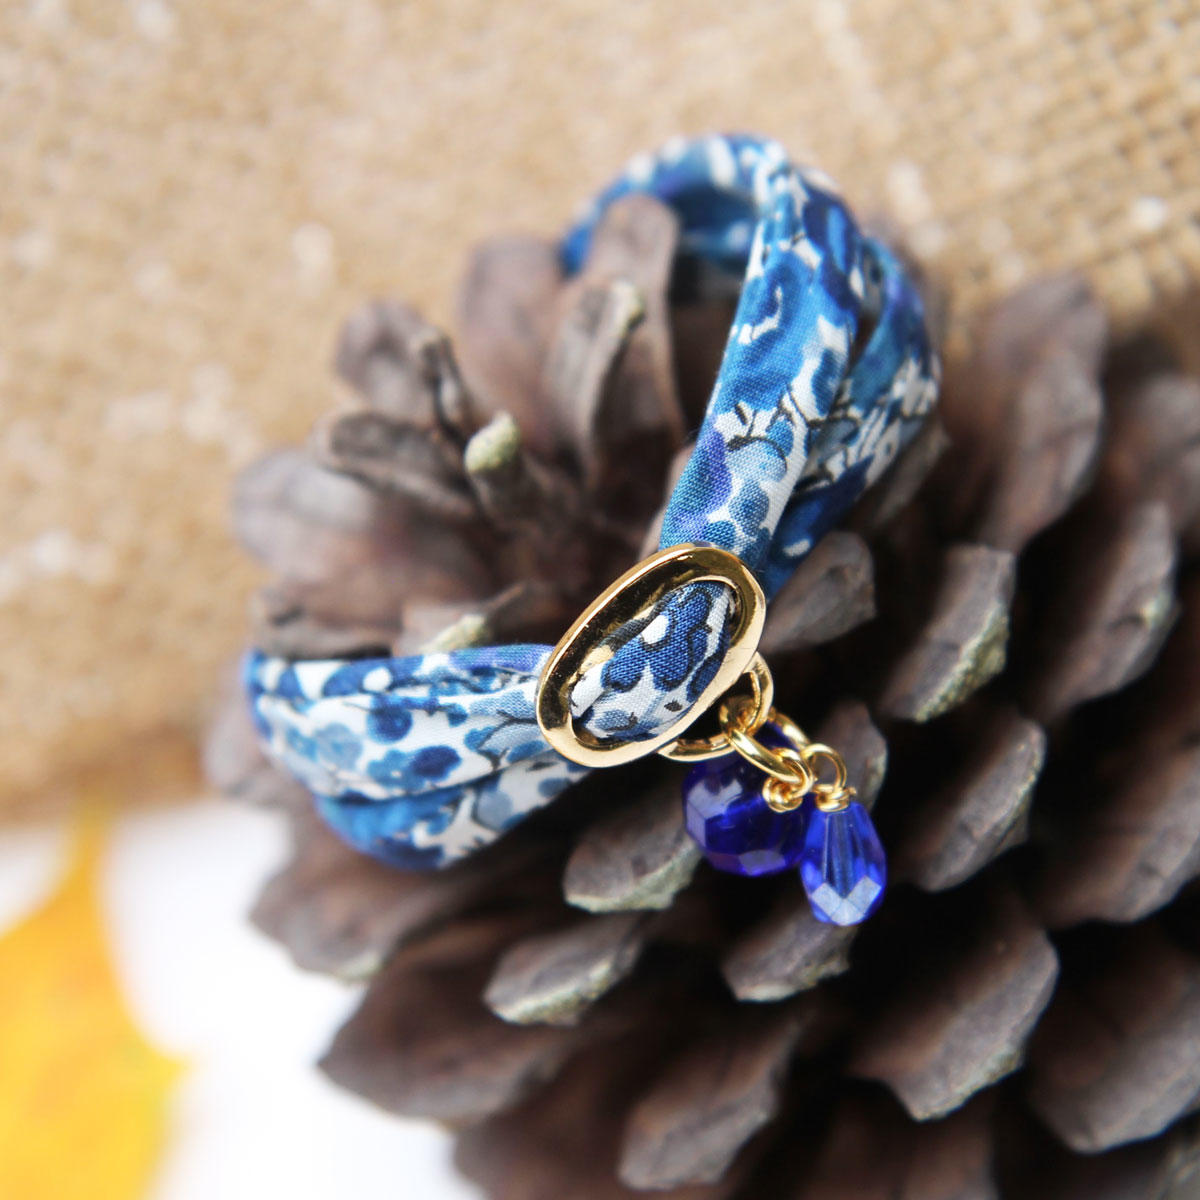 Liberty Blue Ribbon Bracelet with Blue Beads